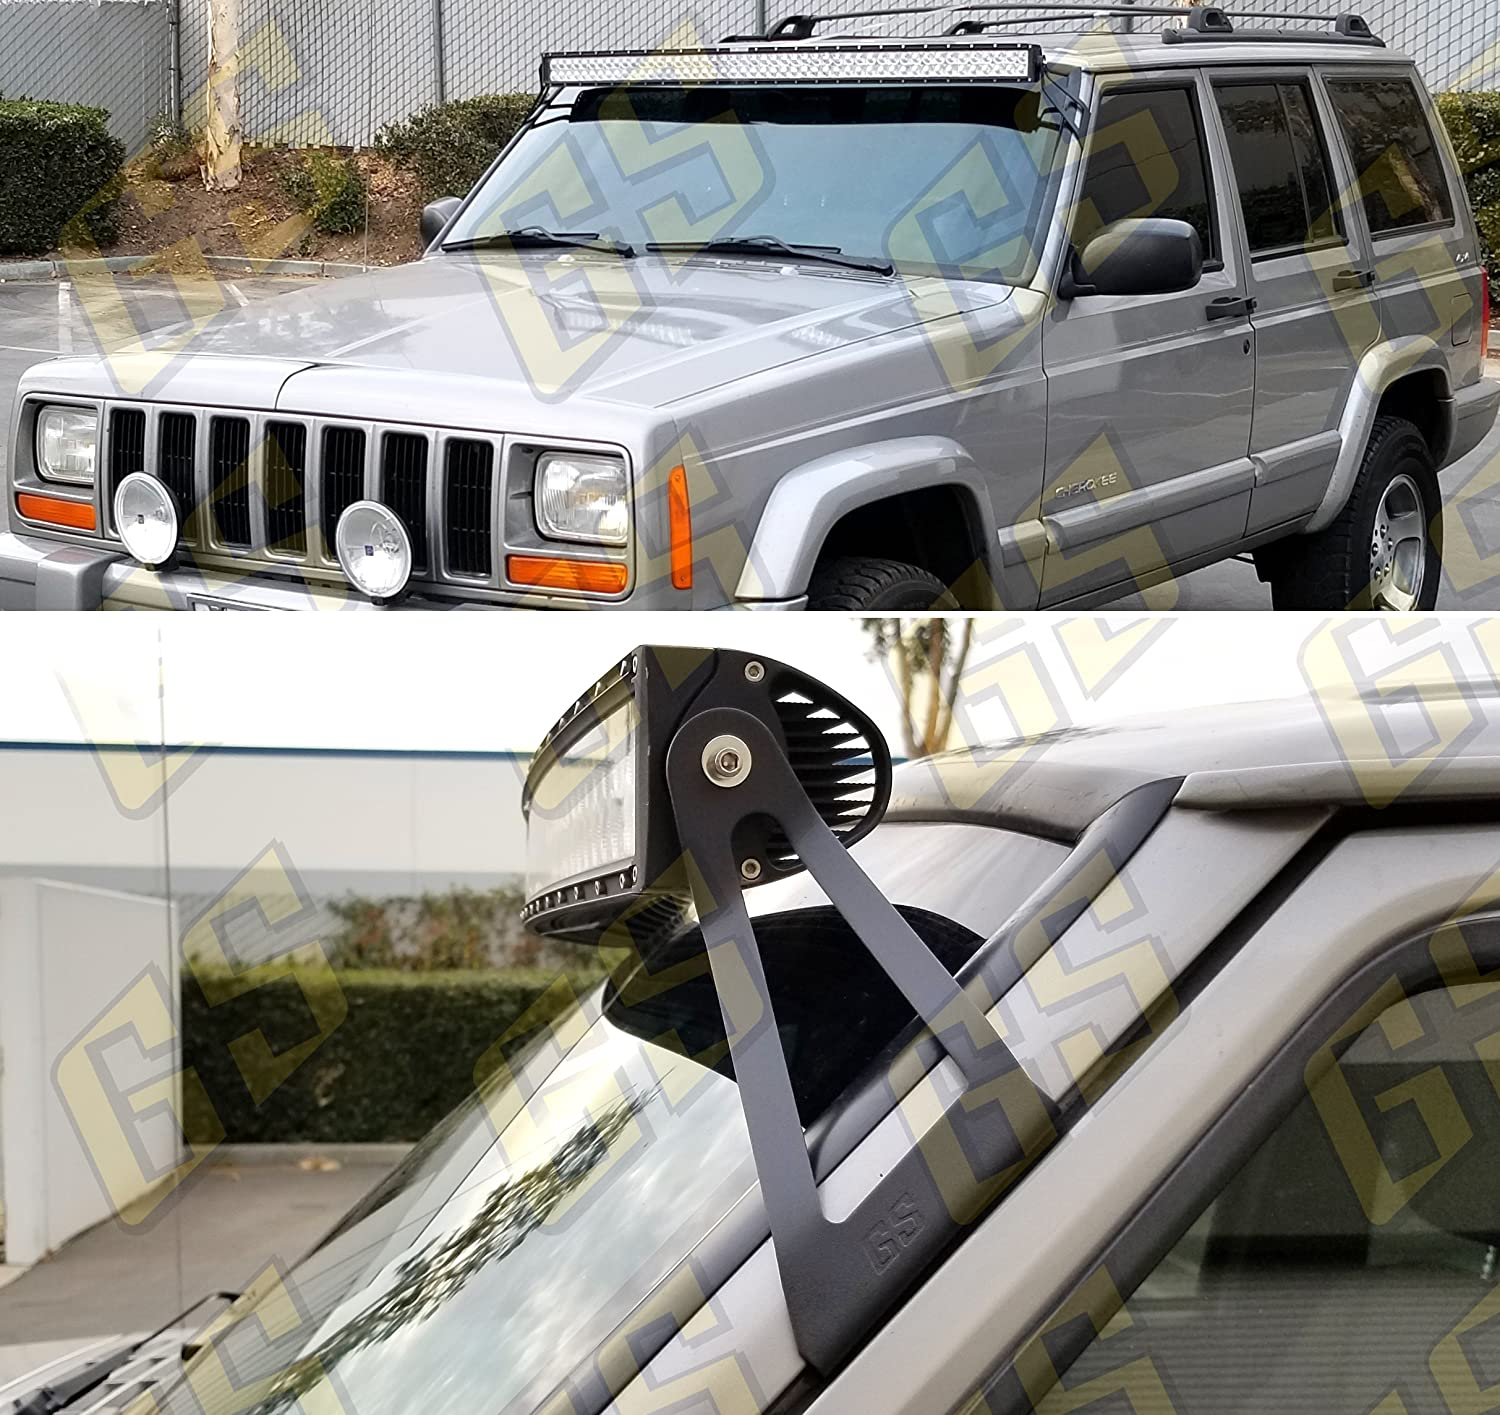 Gs Power Led Light Bar Brackets Option Of 50 52 Inch Curved Mount Off Road Barlight At Roof Upper Windshield Compatible With 1984 2001 Jeep